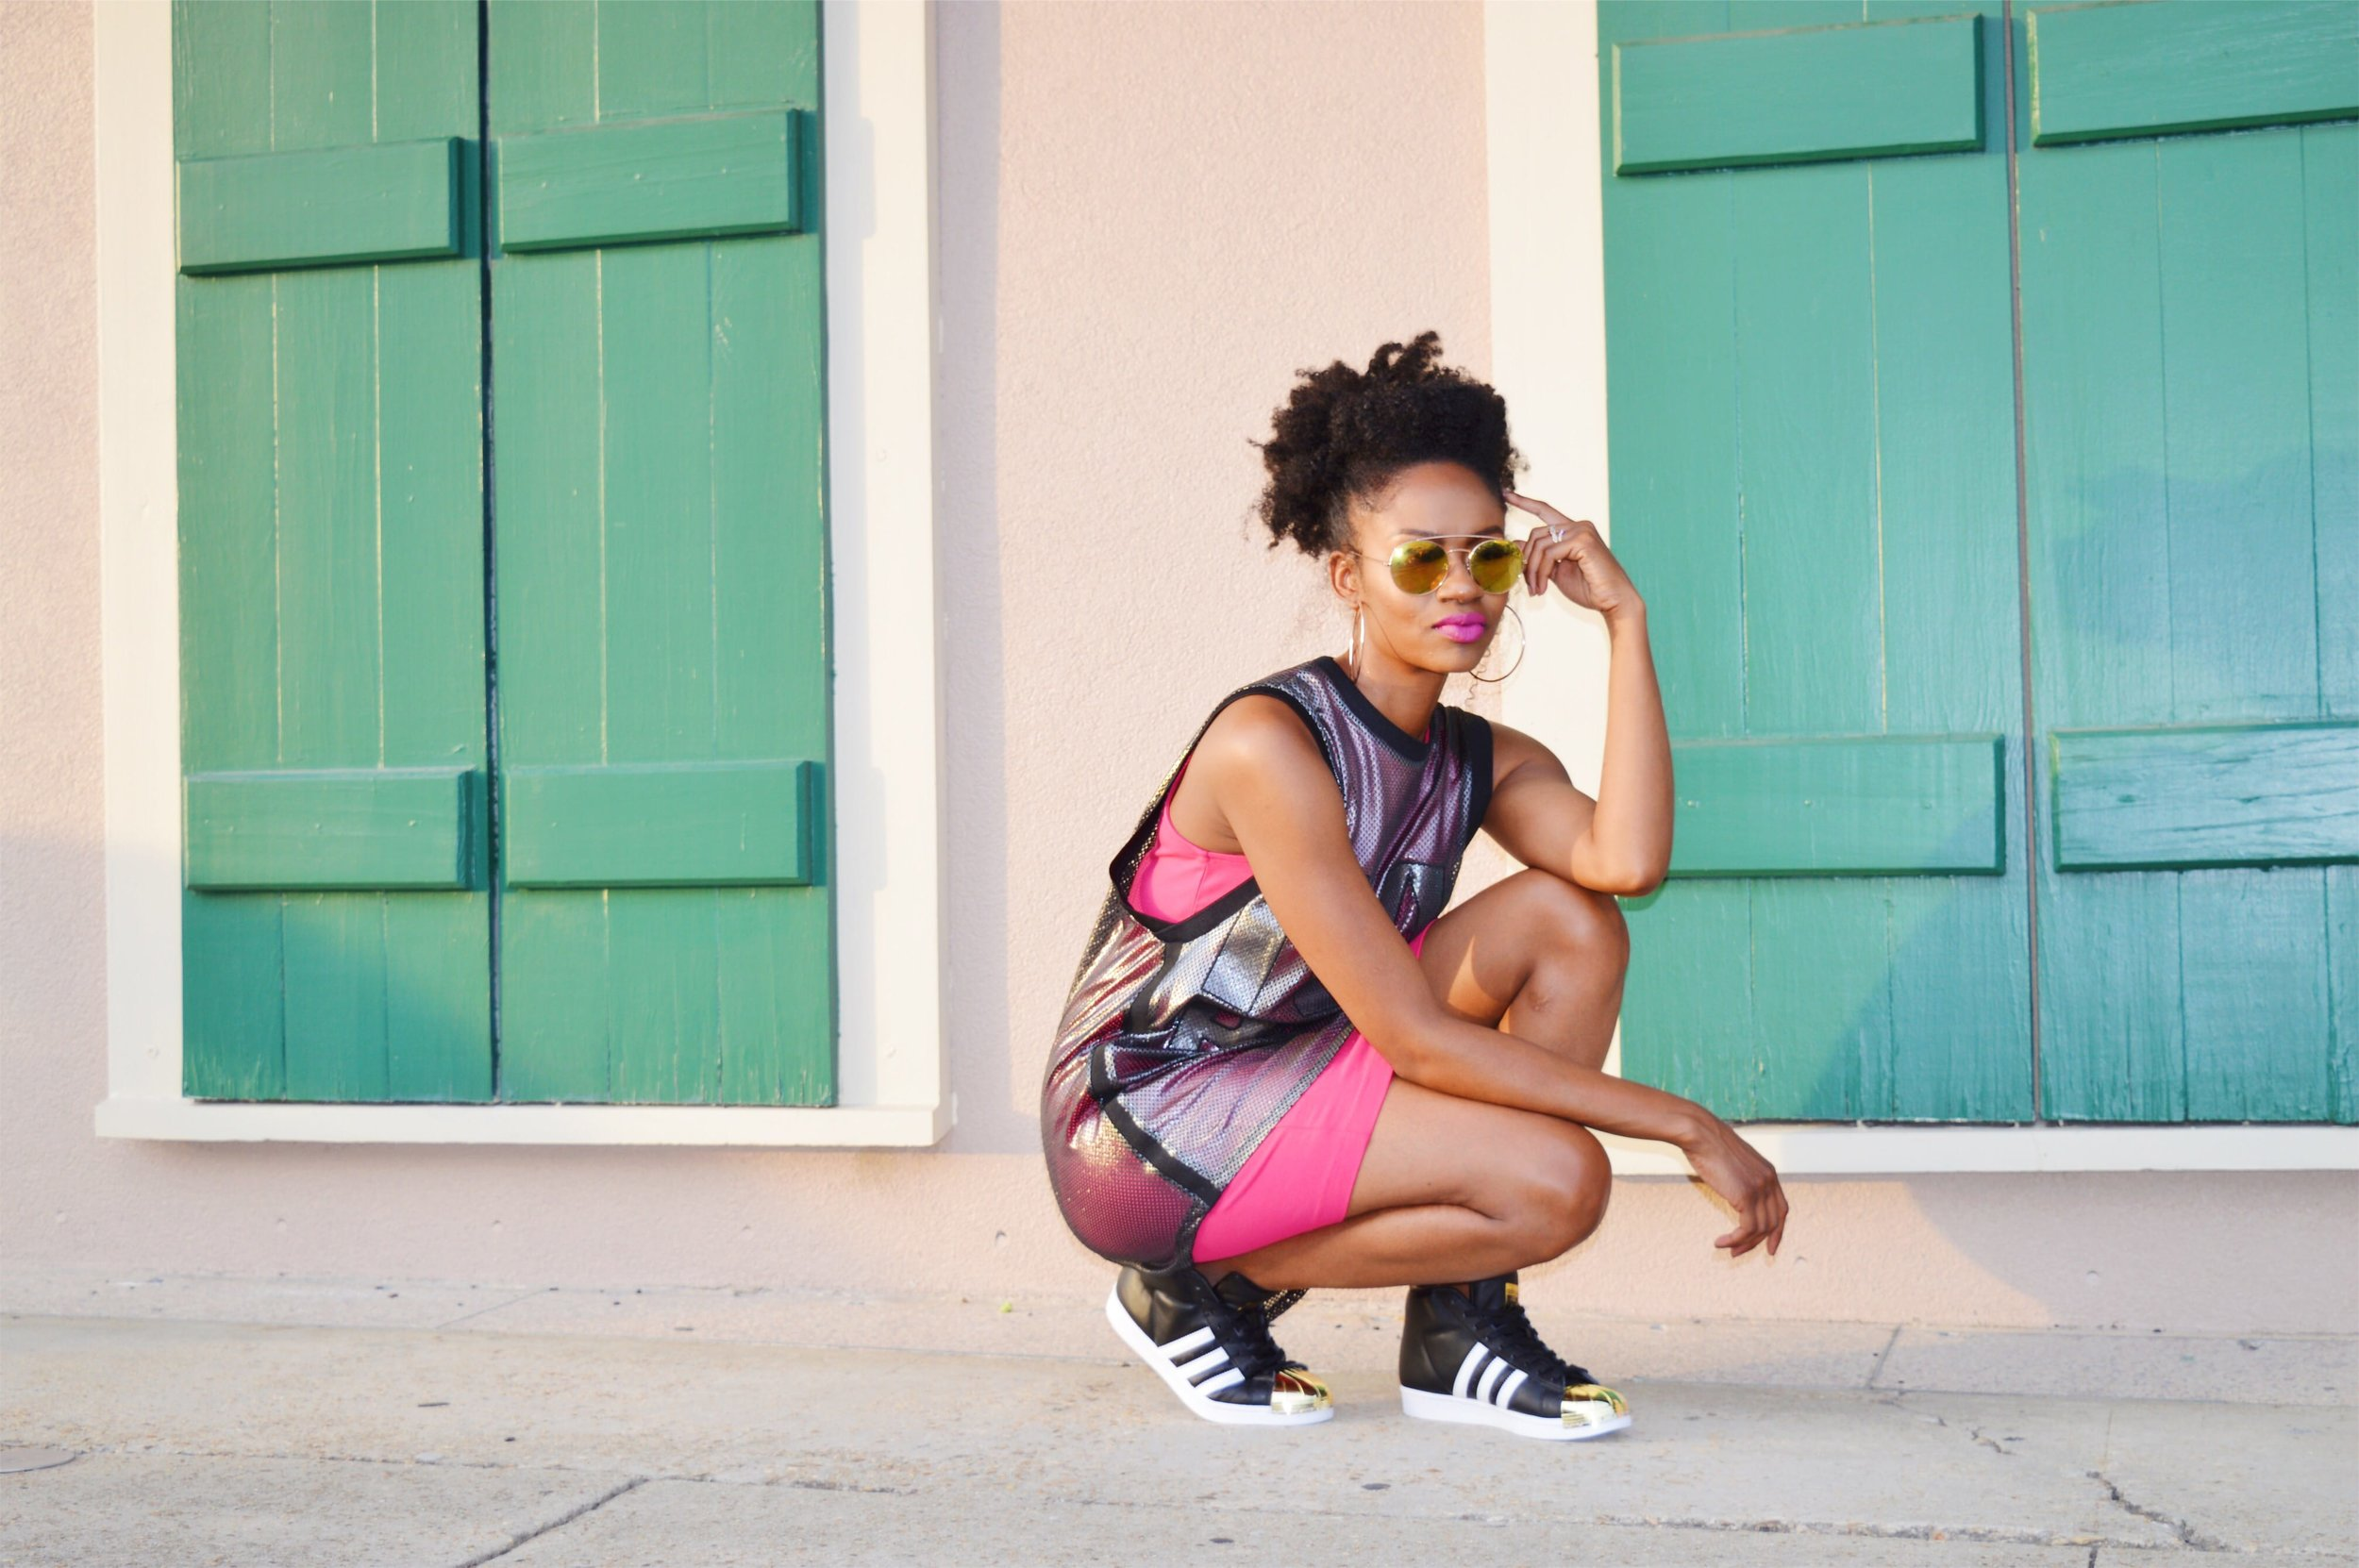 ivy park basketball jersey outfit pink bodycon dress black white gold adidas pro model sneakers